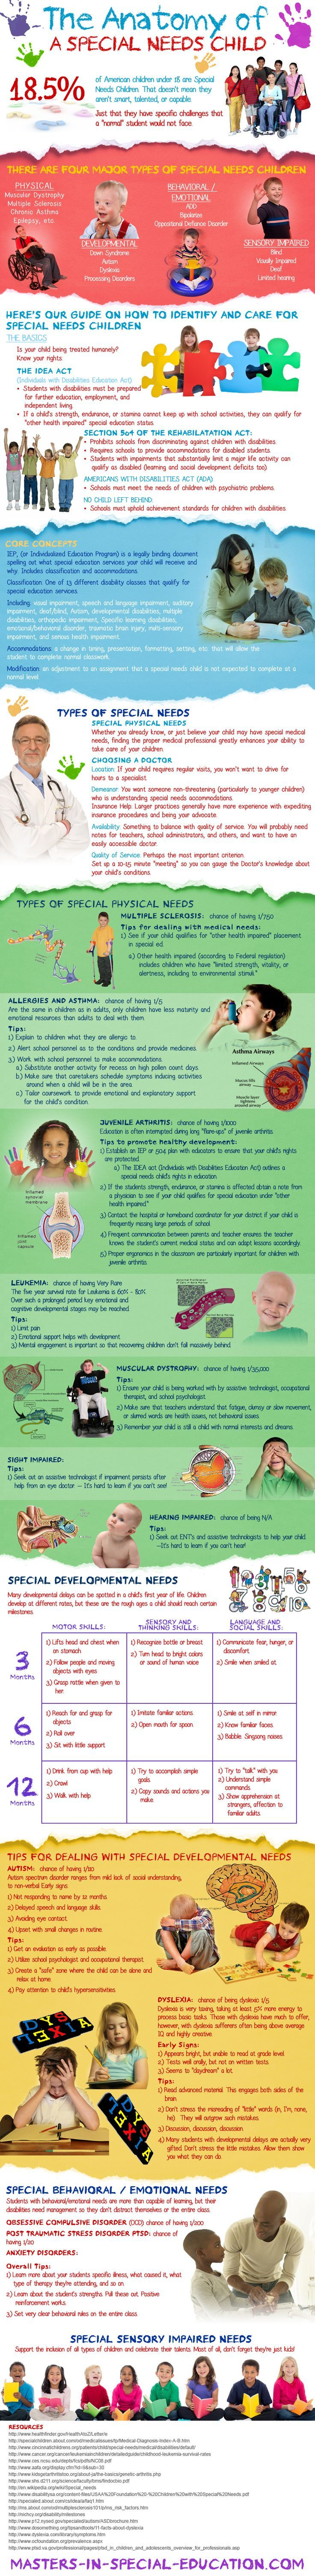 This very thorough infographic covers a lot of special needs information. A great overview of classifications.